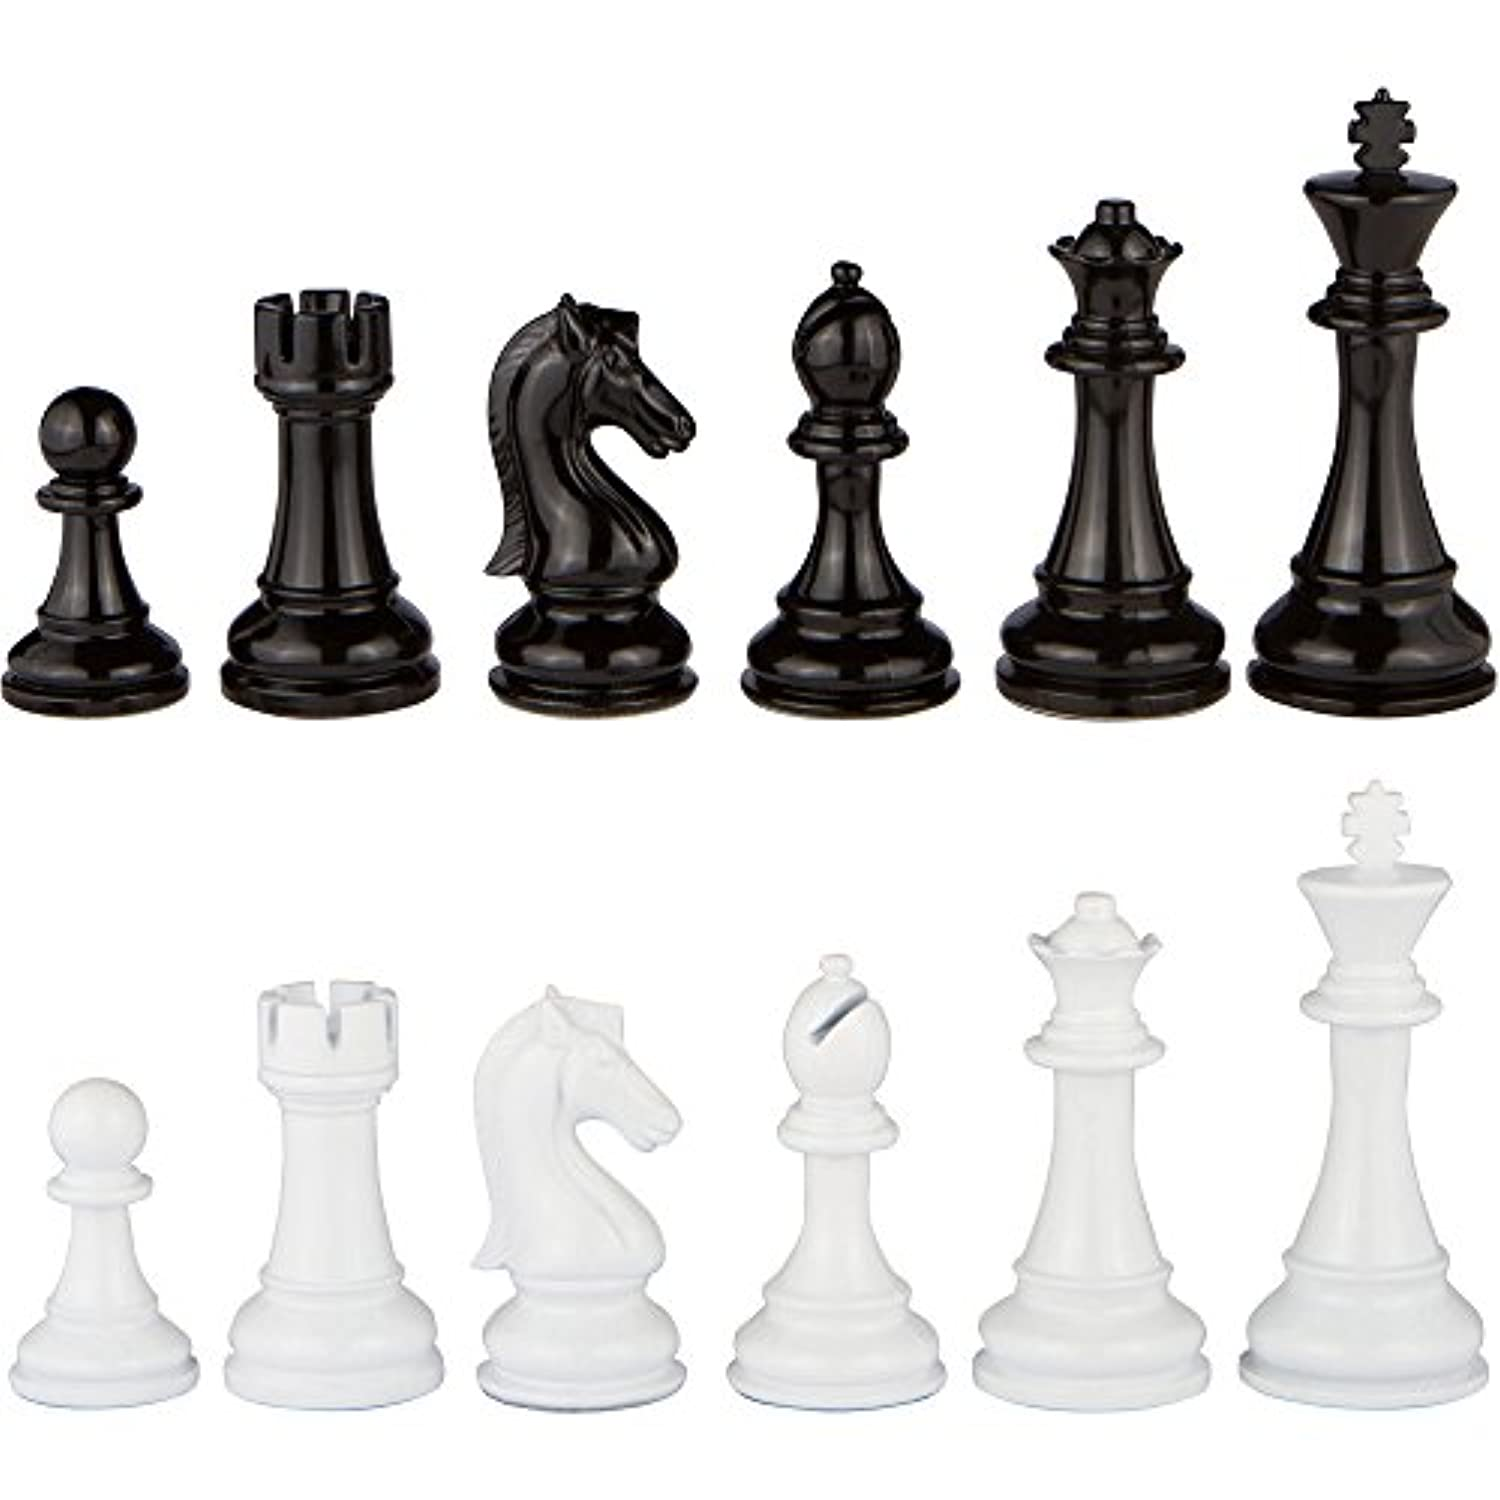 Minerva Black and White Extra Heavy Metal Chess Pieces with Extra Queens - Pieces Only - No Board - 4.5 Inch King